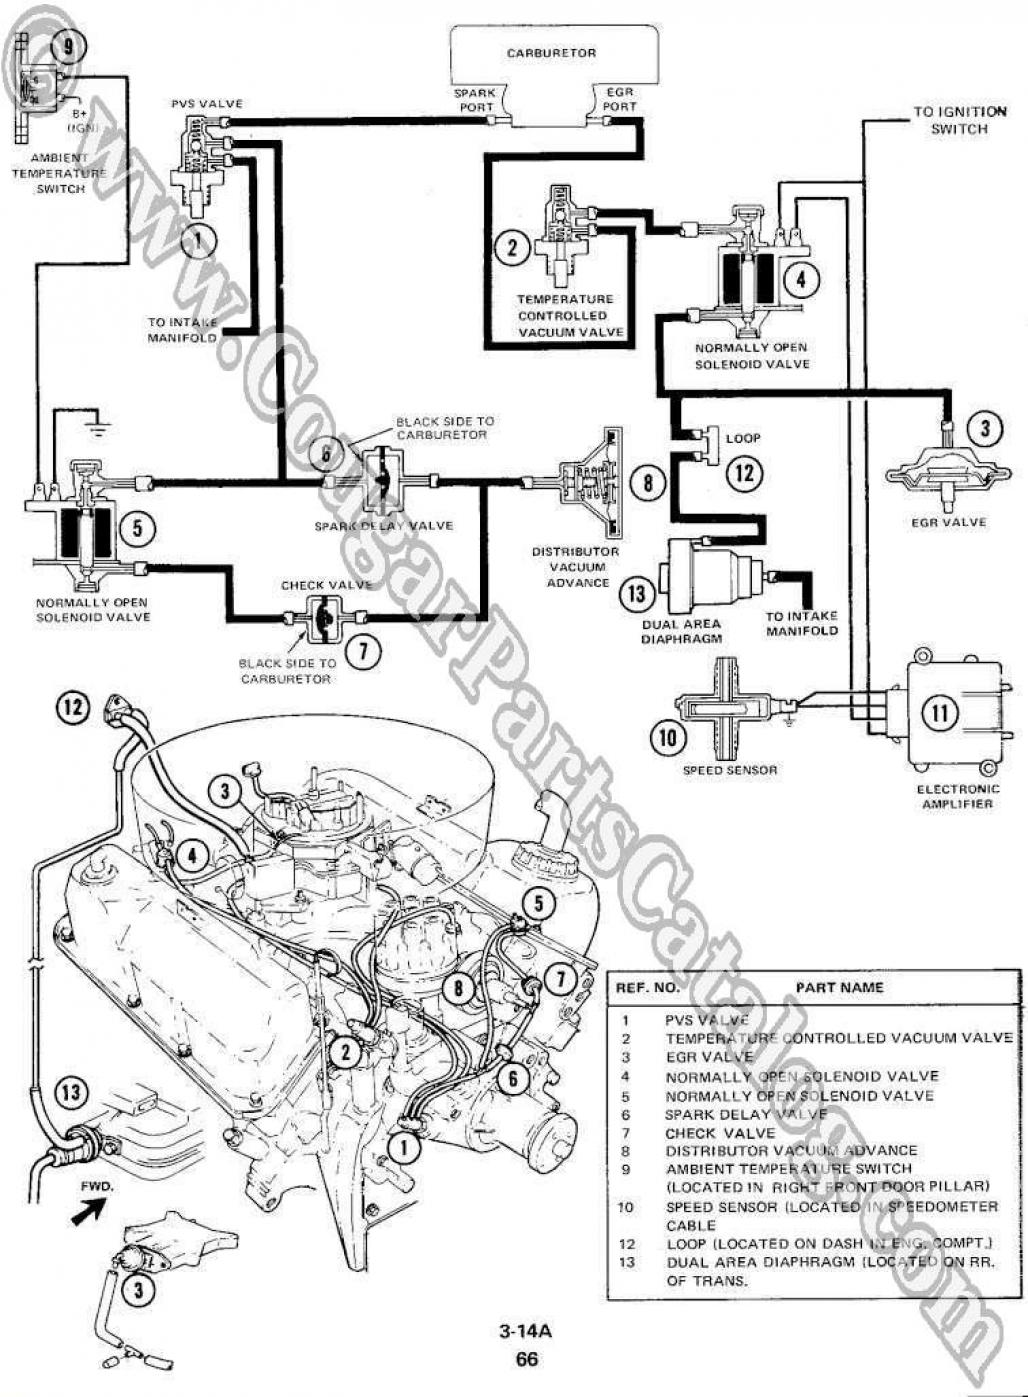 1970 Cougar Wiring Diagram 1970 Cougar Vinyl Top Wiring